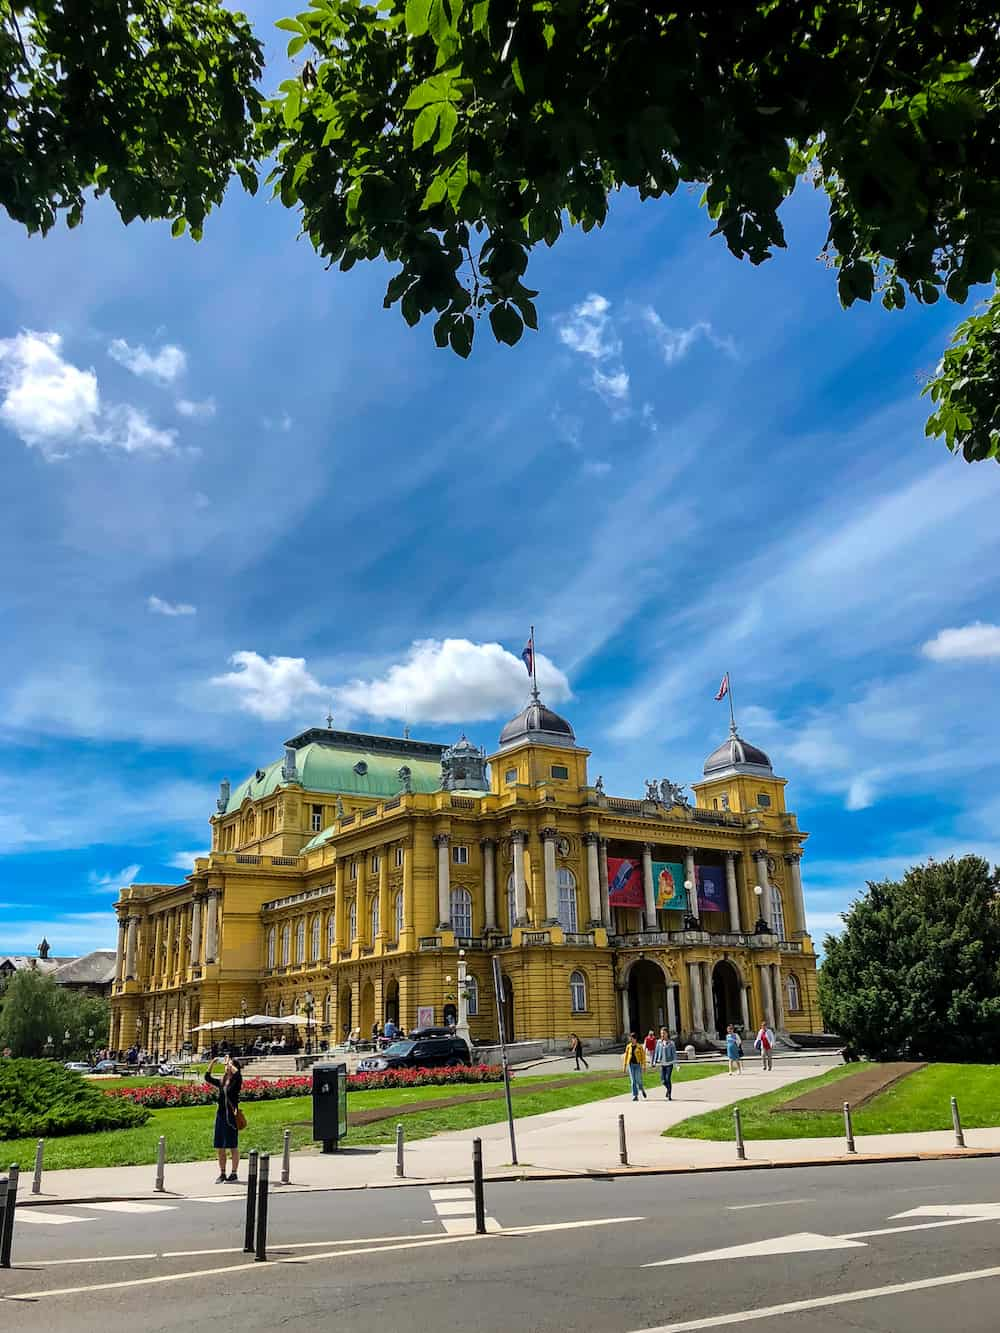 Image of Croatian National Theatre in Zagreb